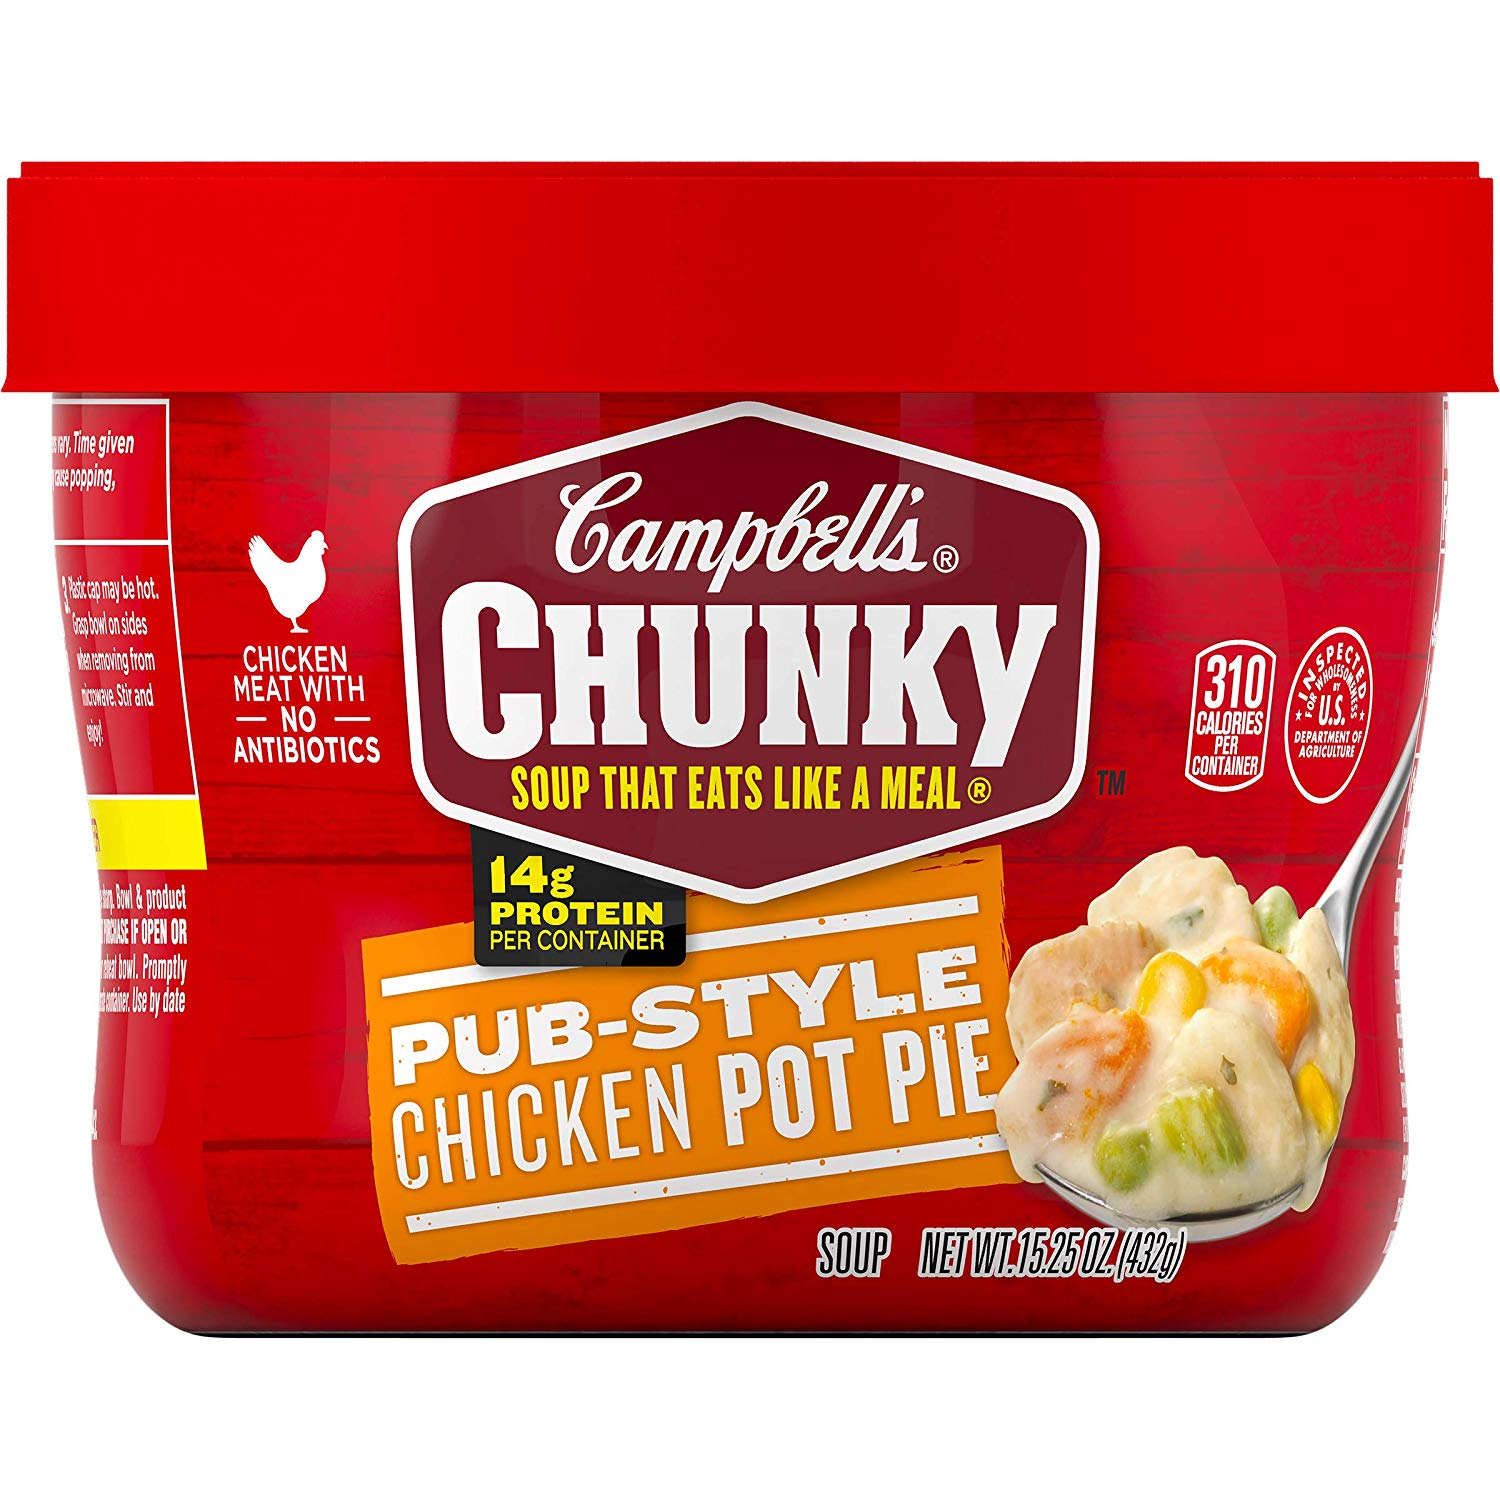 Campbell's Chunky Pub-Style Chicken Pot Pie Soup Microwavable Bowl